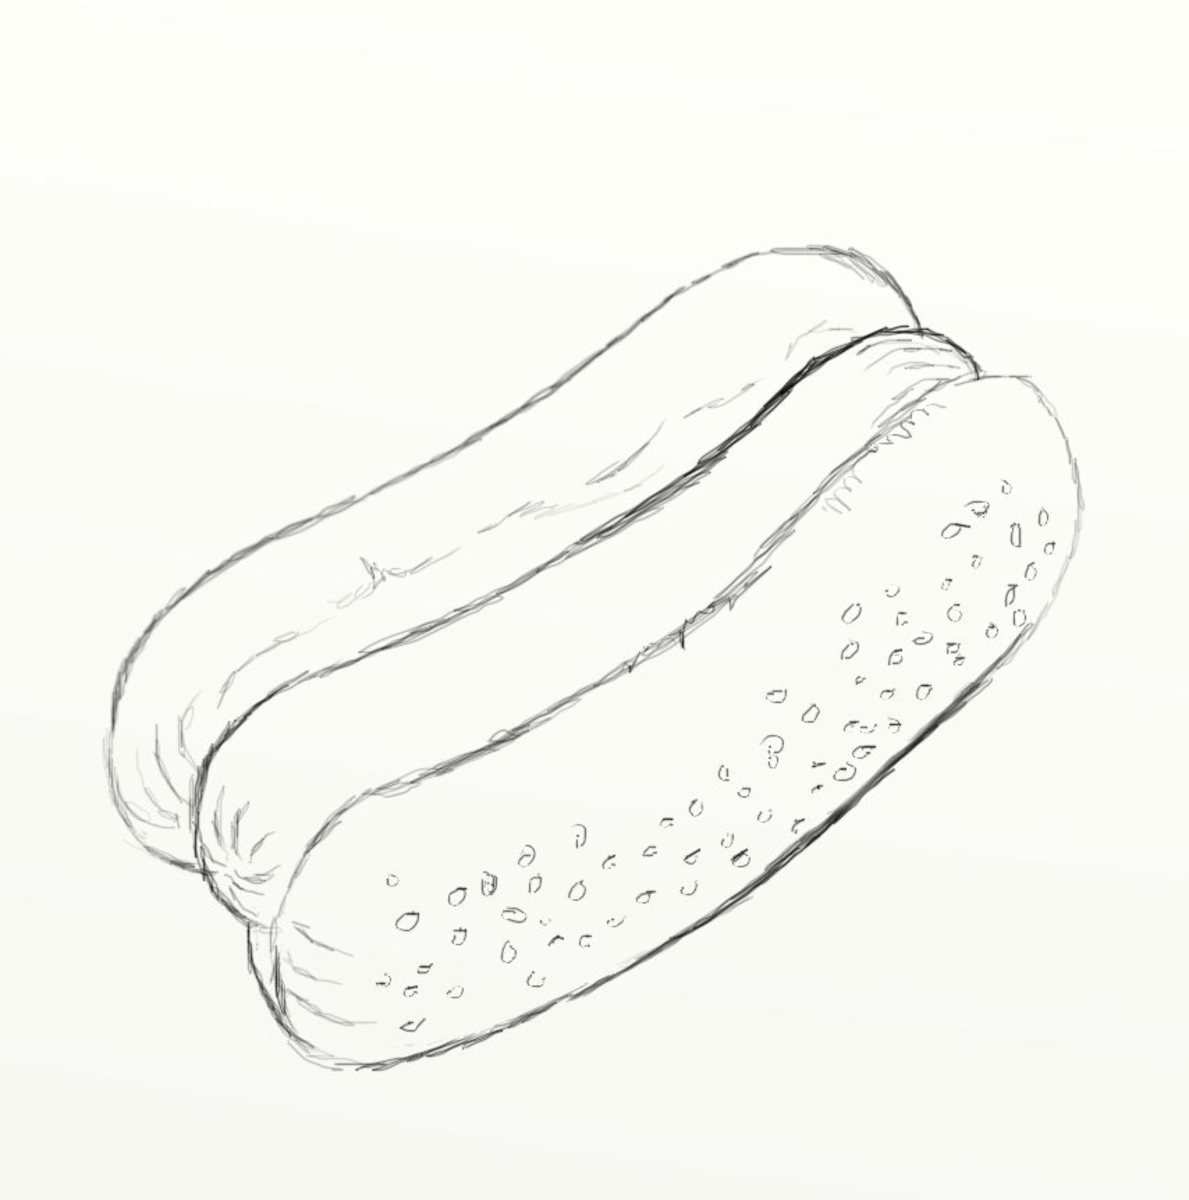 how to draw a hot dog step by step